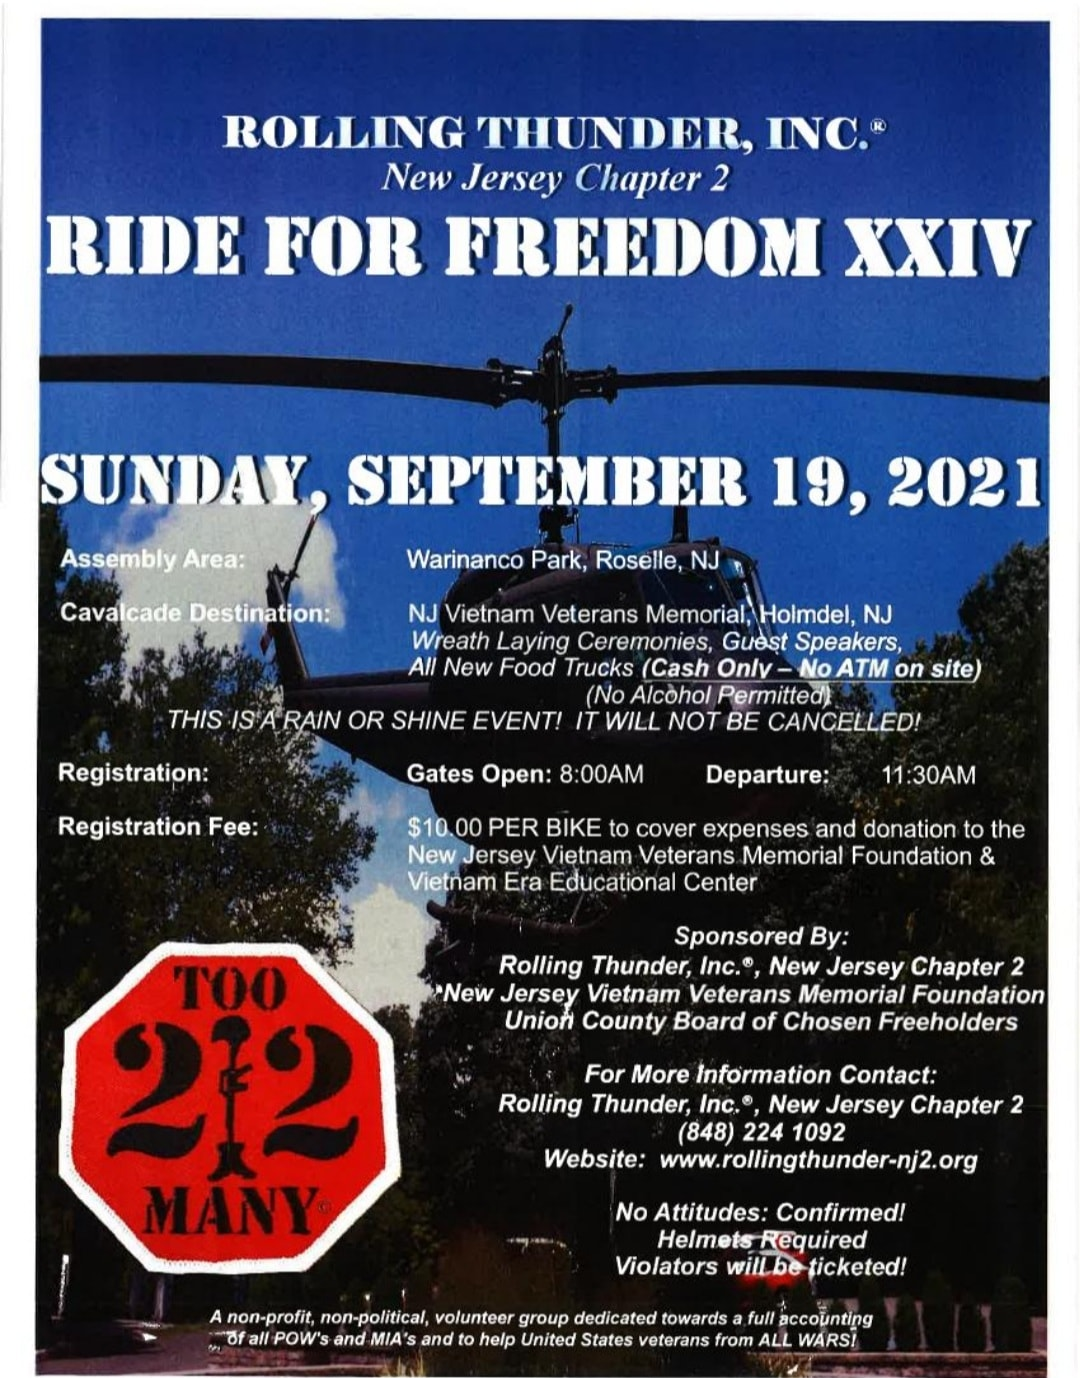 RIDE FOR FREEDOM 1 - Rolling Thunder NJ 2 Ride for Freedom XXIV